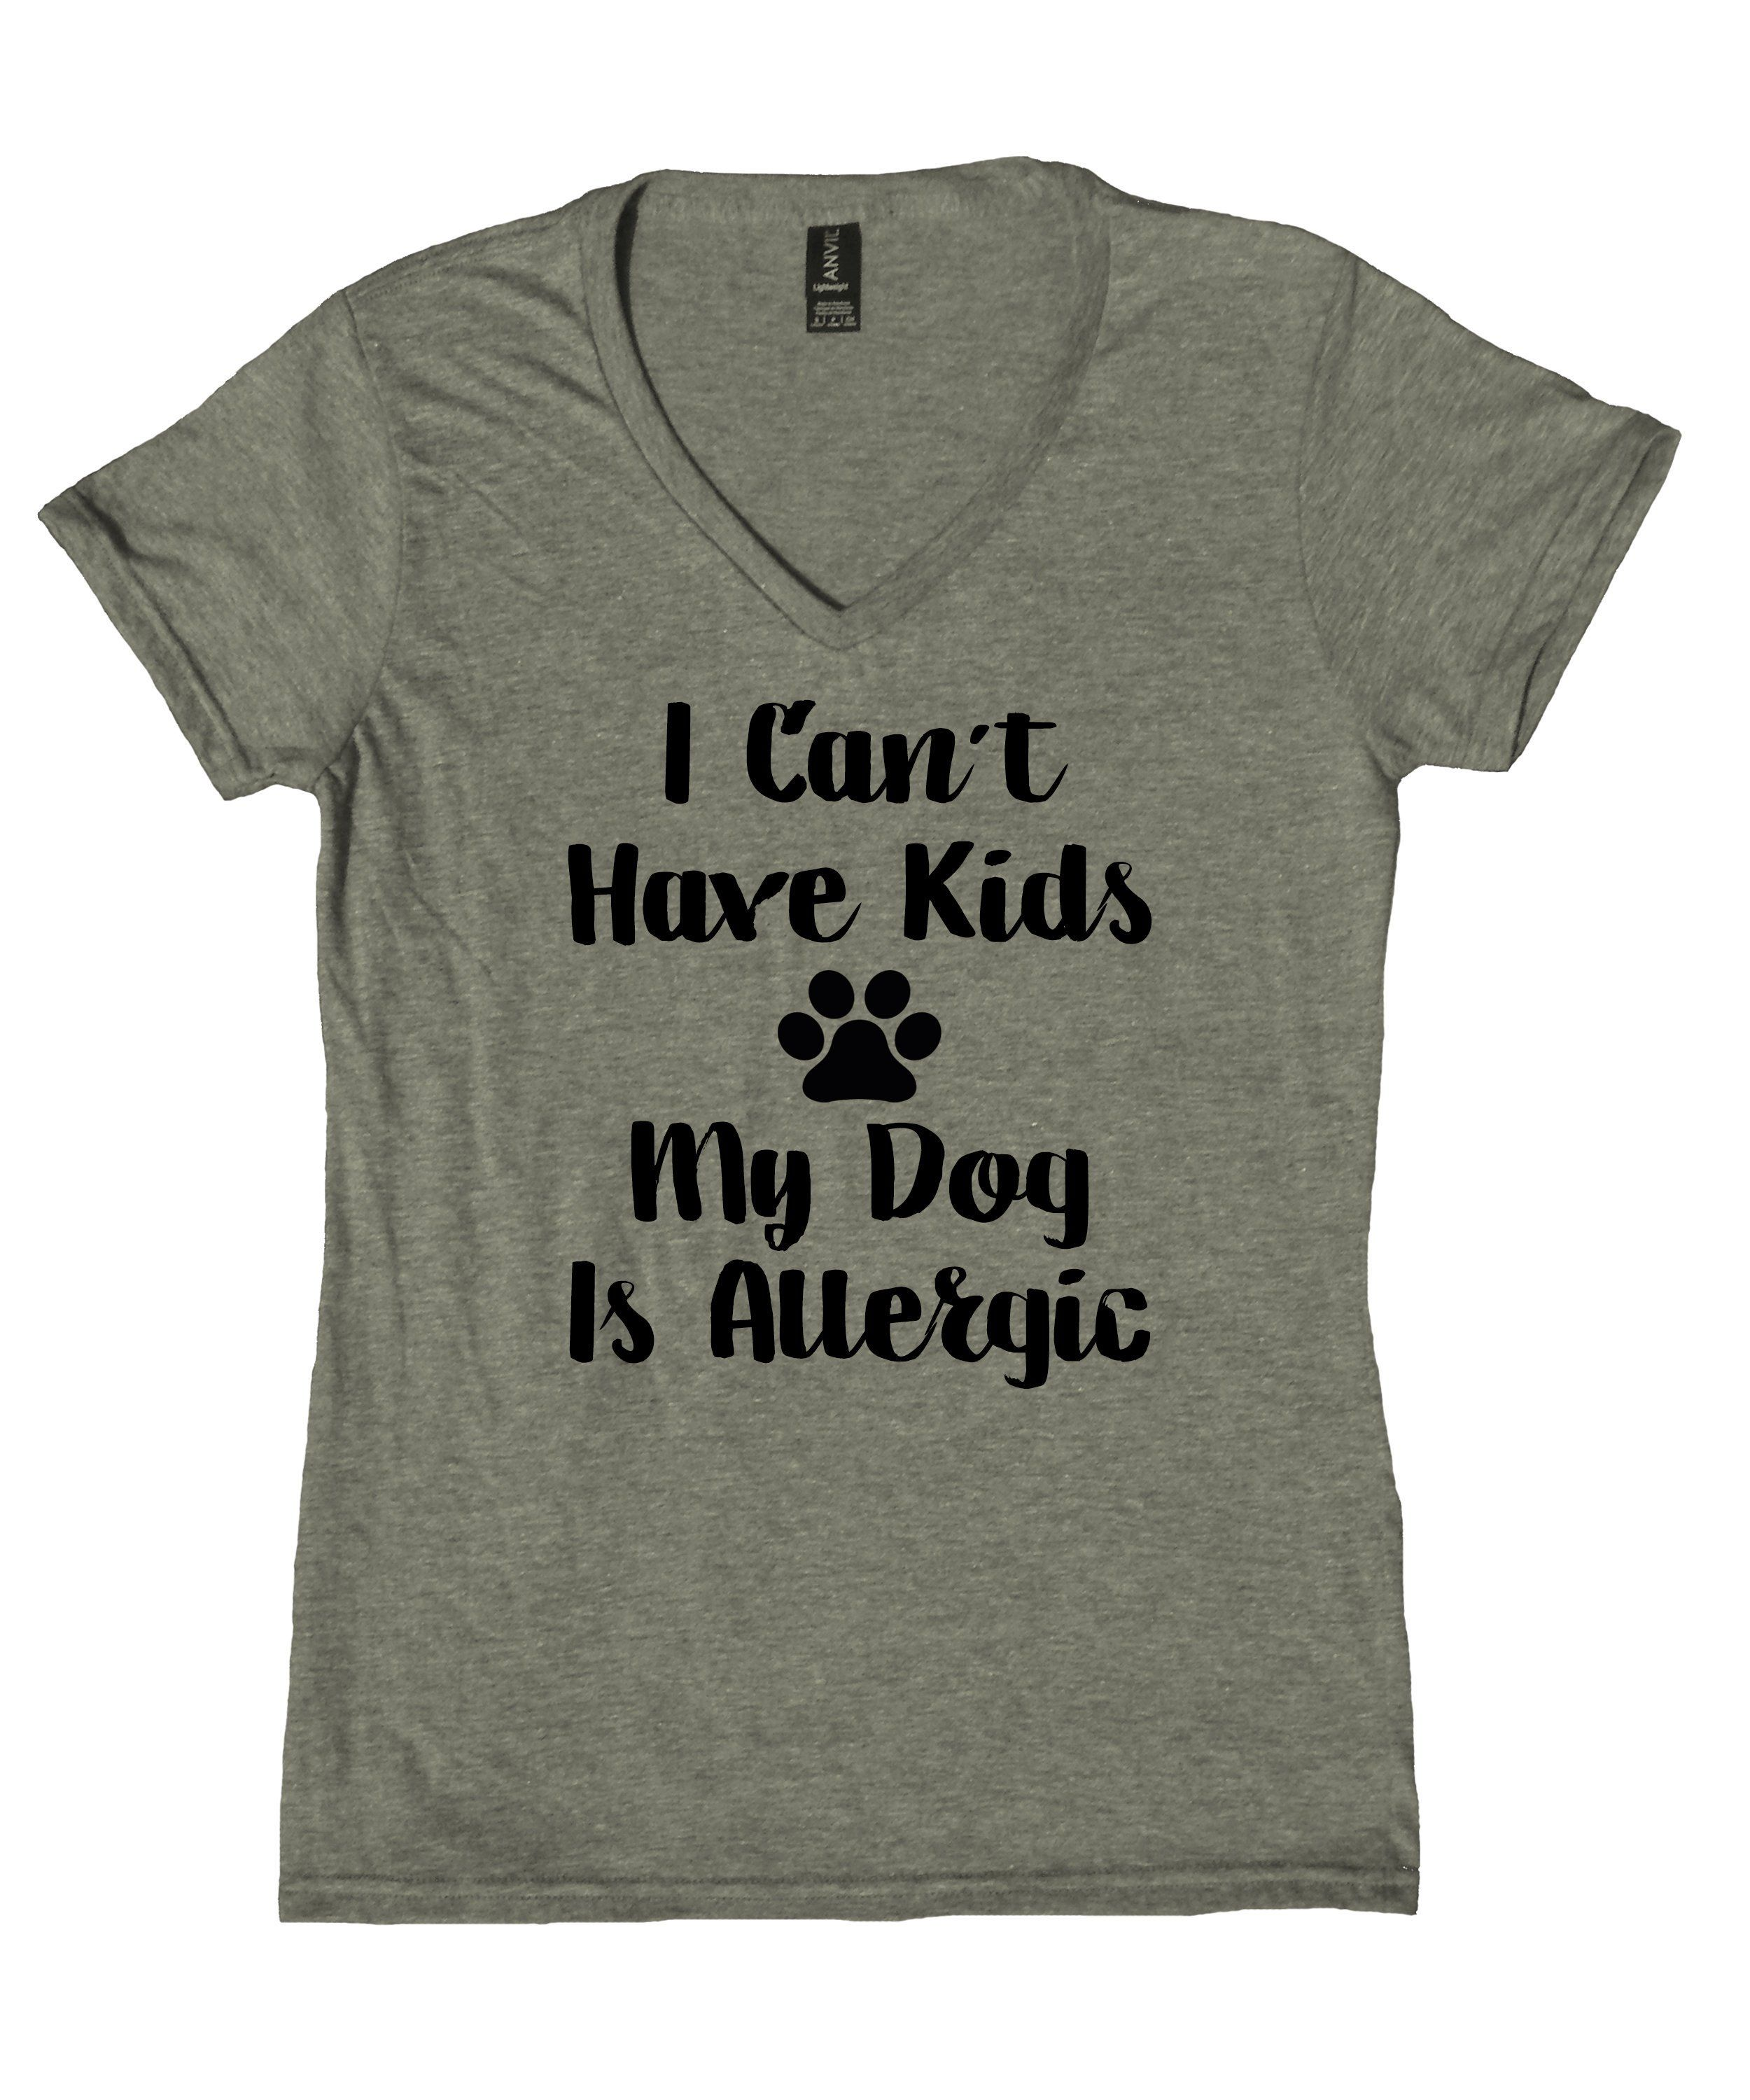 I Can't Have Kids My Dog Is Allergic Shirt Funny Dog Mom